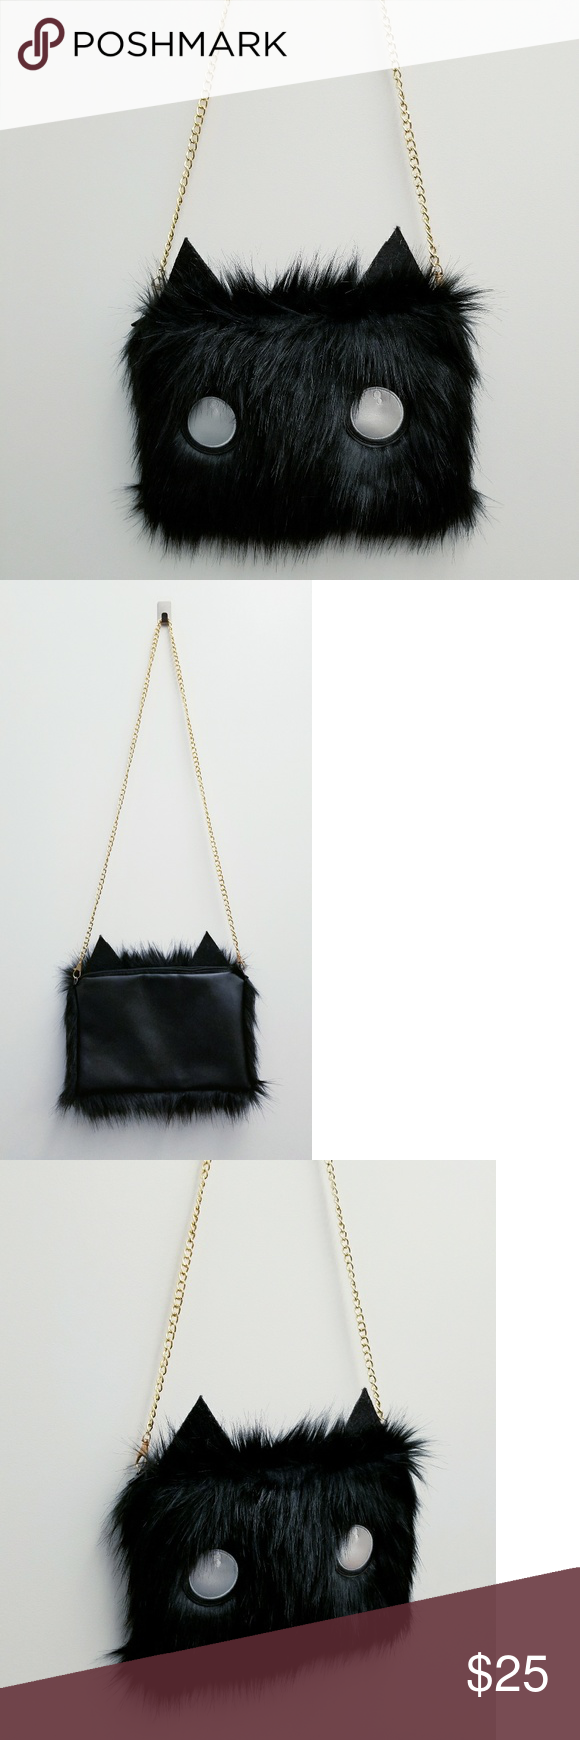 Black Faux Fur Eye & Ears Clutch NWOT  Black Faux Fur  PU/Faux Leather on the Back  Black Ears & Silver White Eyes  Gold Chain Hardware - Removable  Use as a Clutch or Crossbody Bags Crossbody Bags